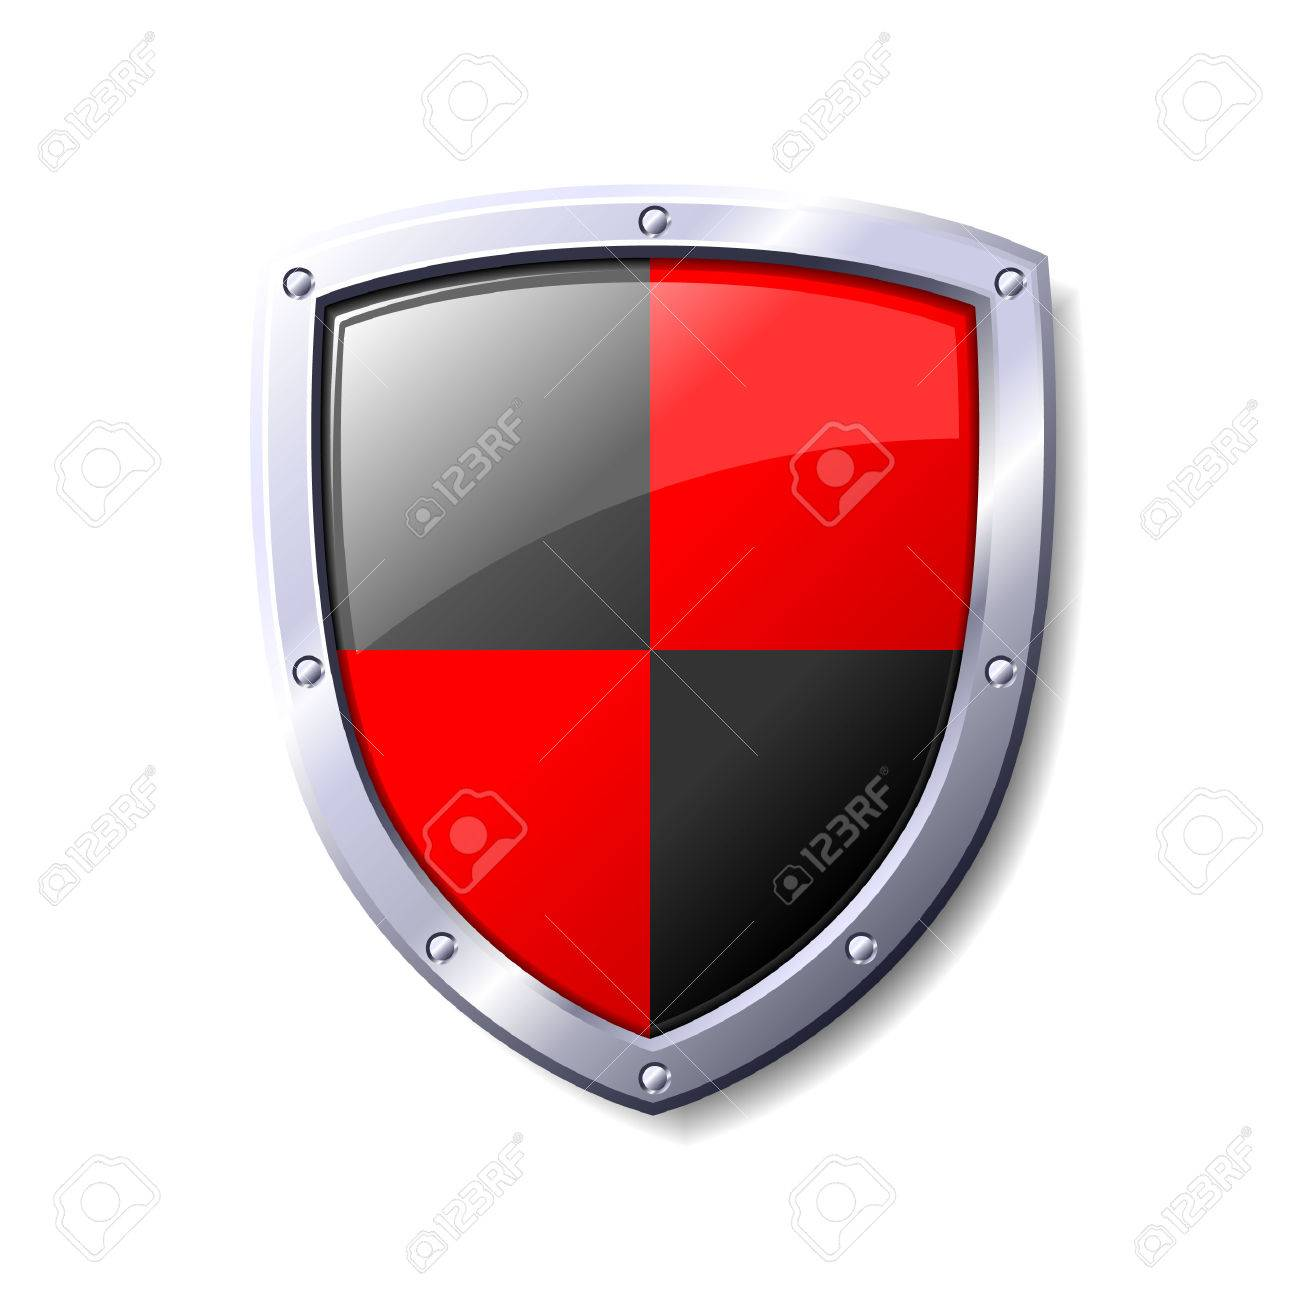 Red and black shield. Available in jpeg and eps8 formats. Stock Vector - 5548686